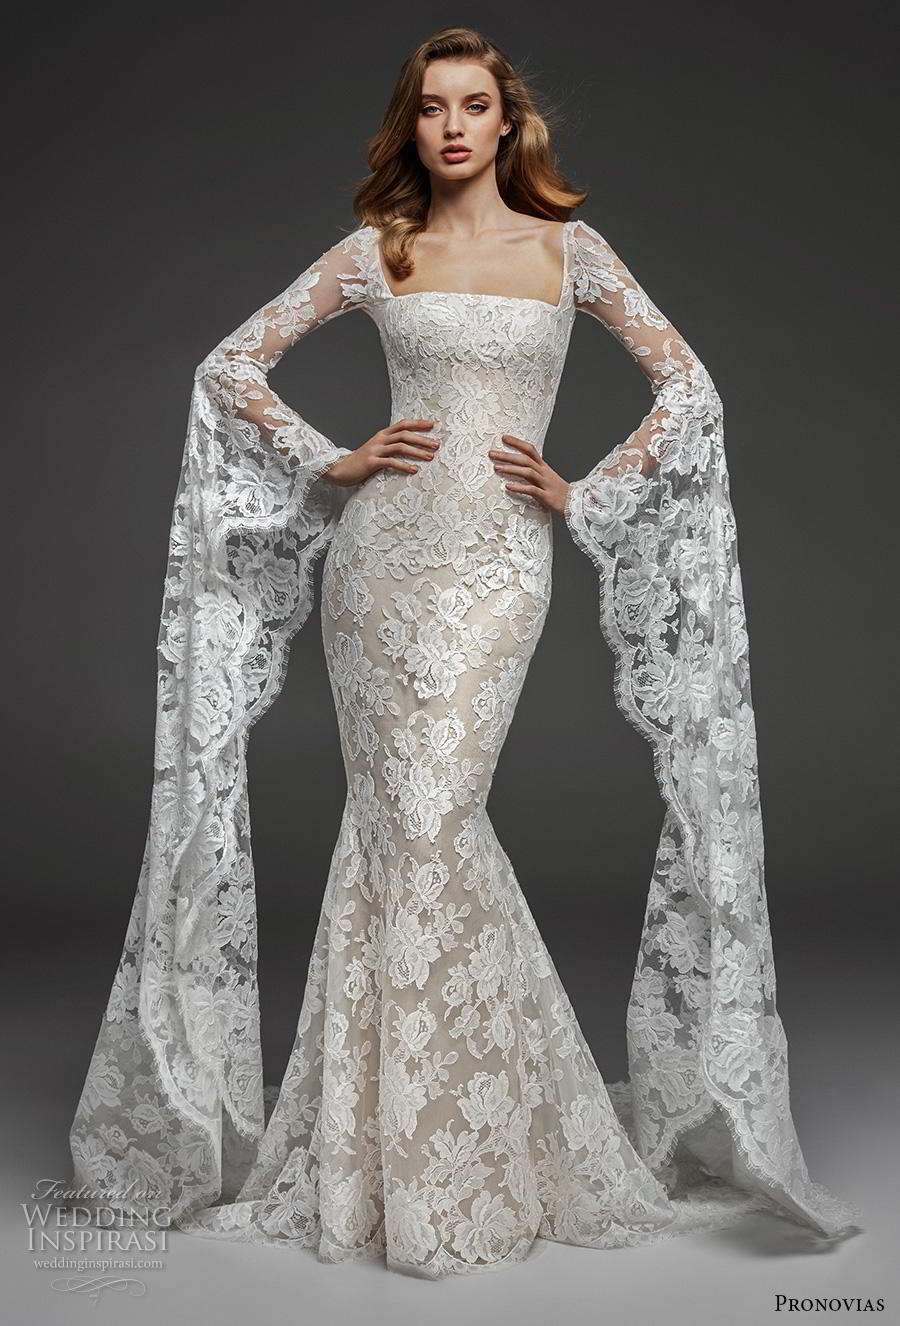 atelier pronovias 2019 bridal long bell sleeves straight across neckline full embellishment elegant fit and flare wedding dress lace button back chapel train (14) mv